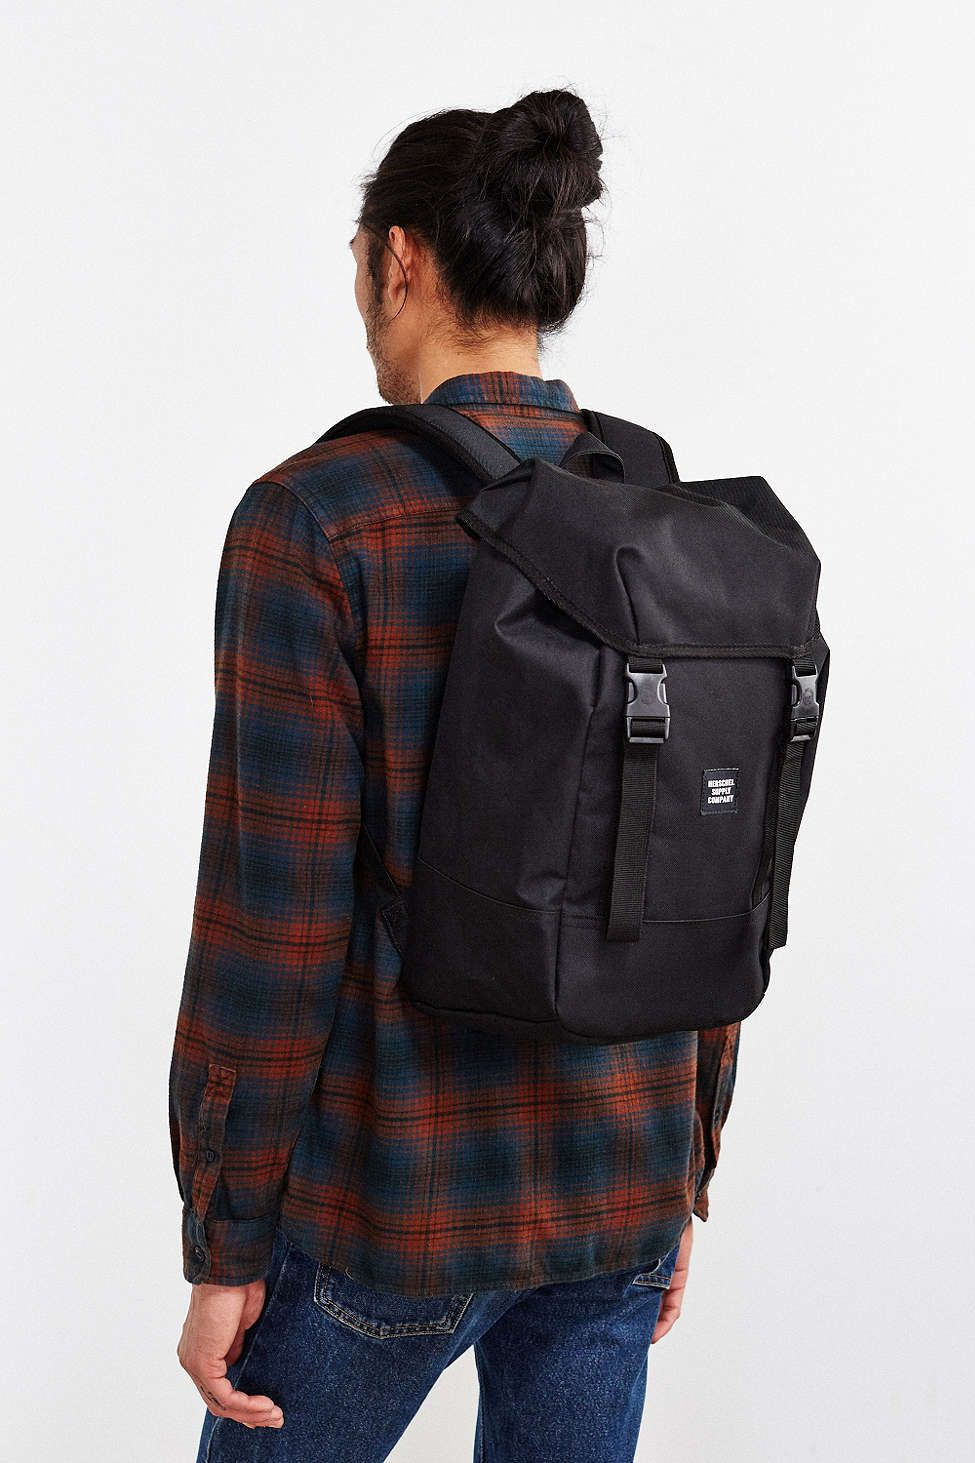 Herschel Supply Co. Iona Backpack - Urban Outfitters   bags ... dbb6f8f4f7